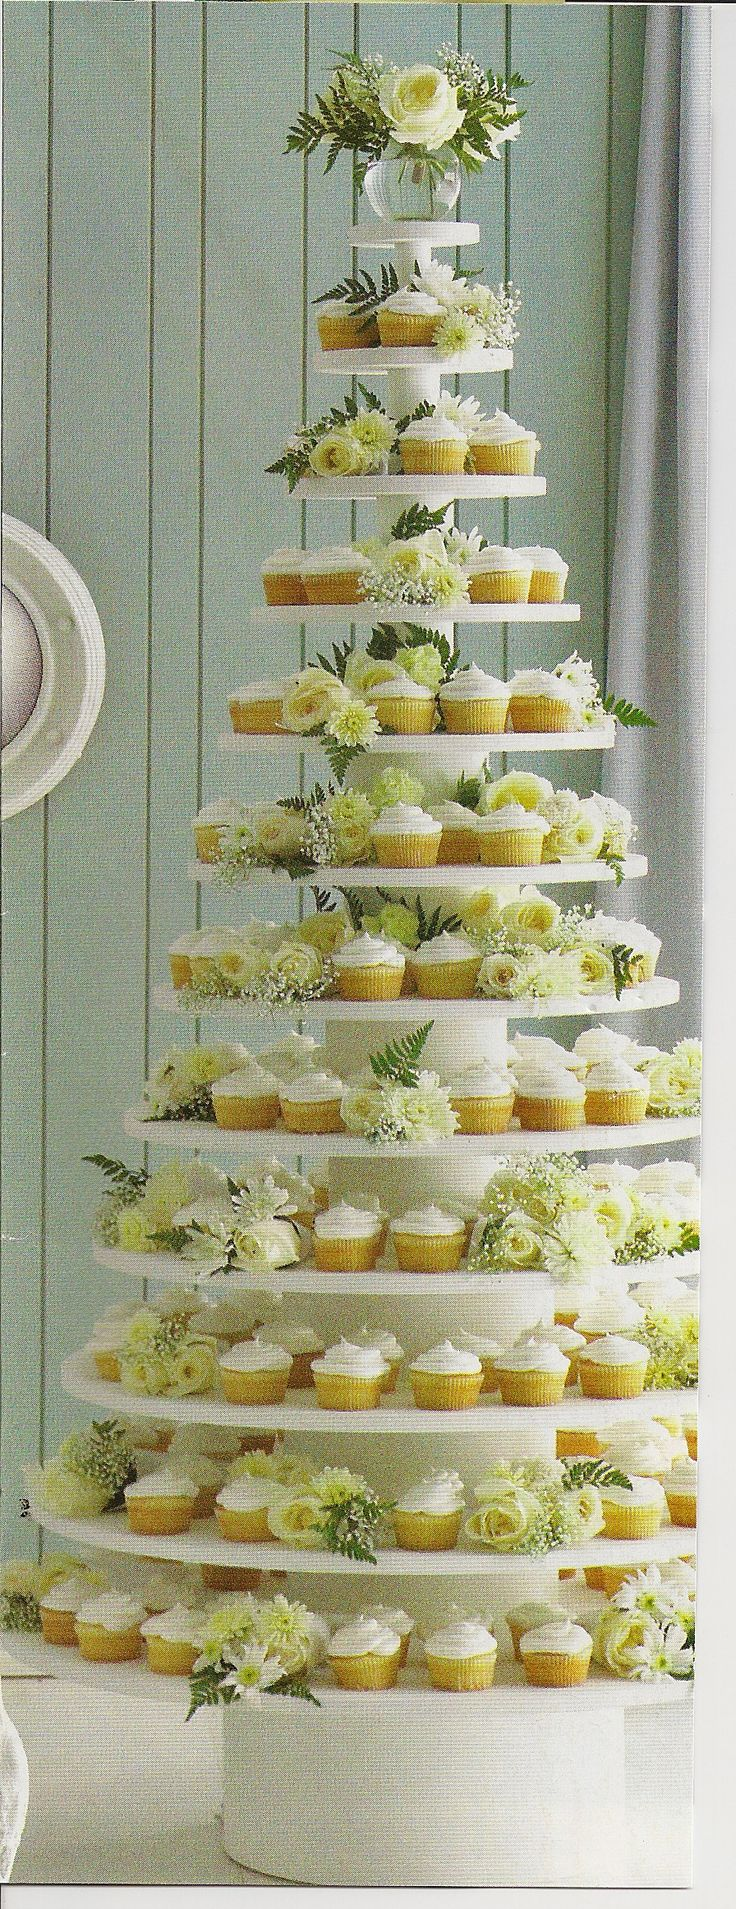 I love how the flowers and the pale lemon colour make this so chic